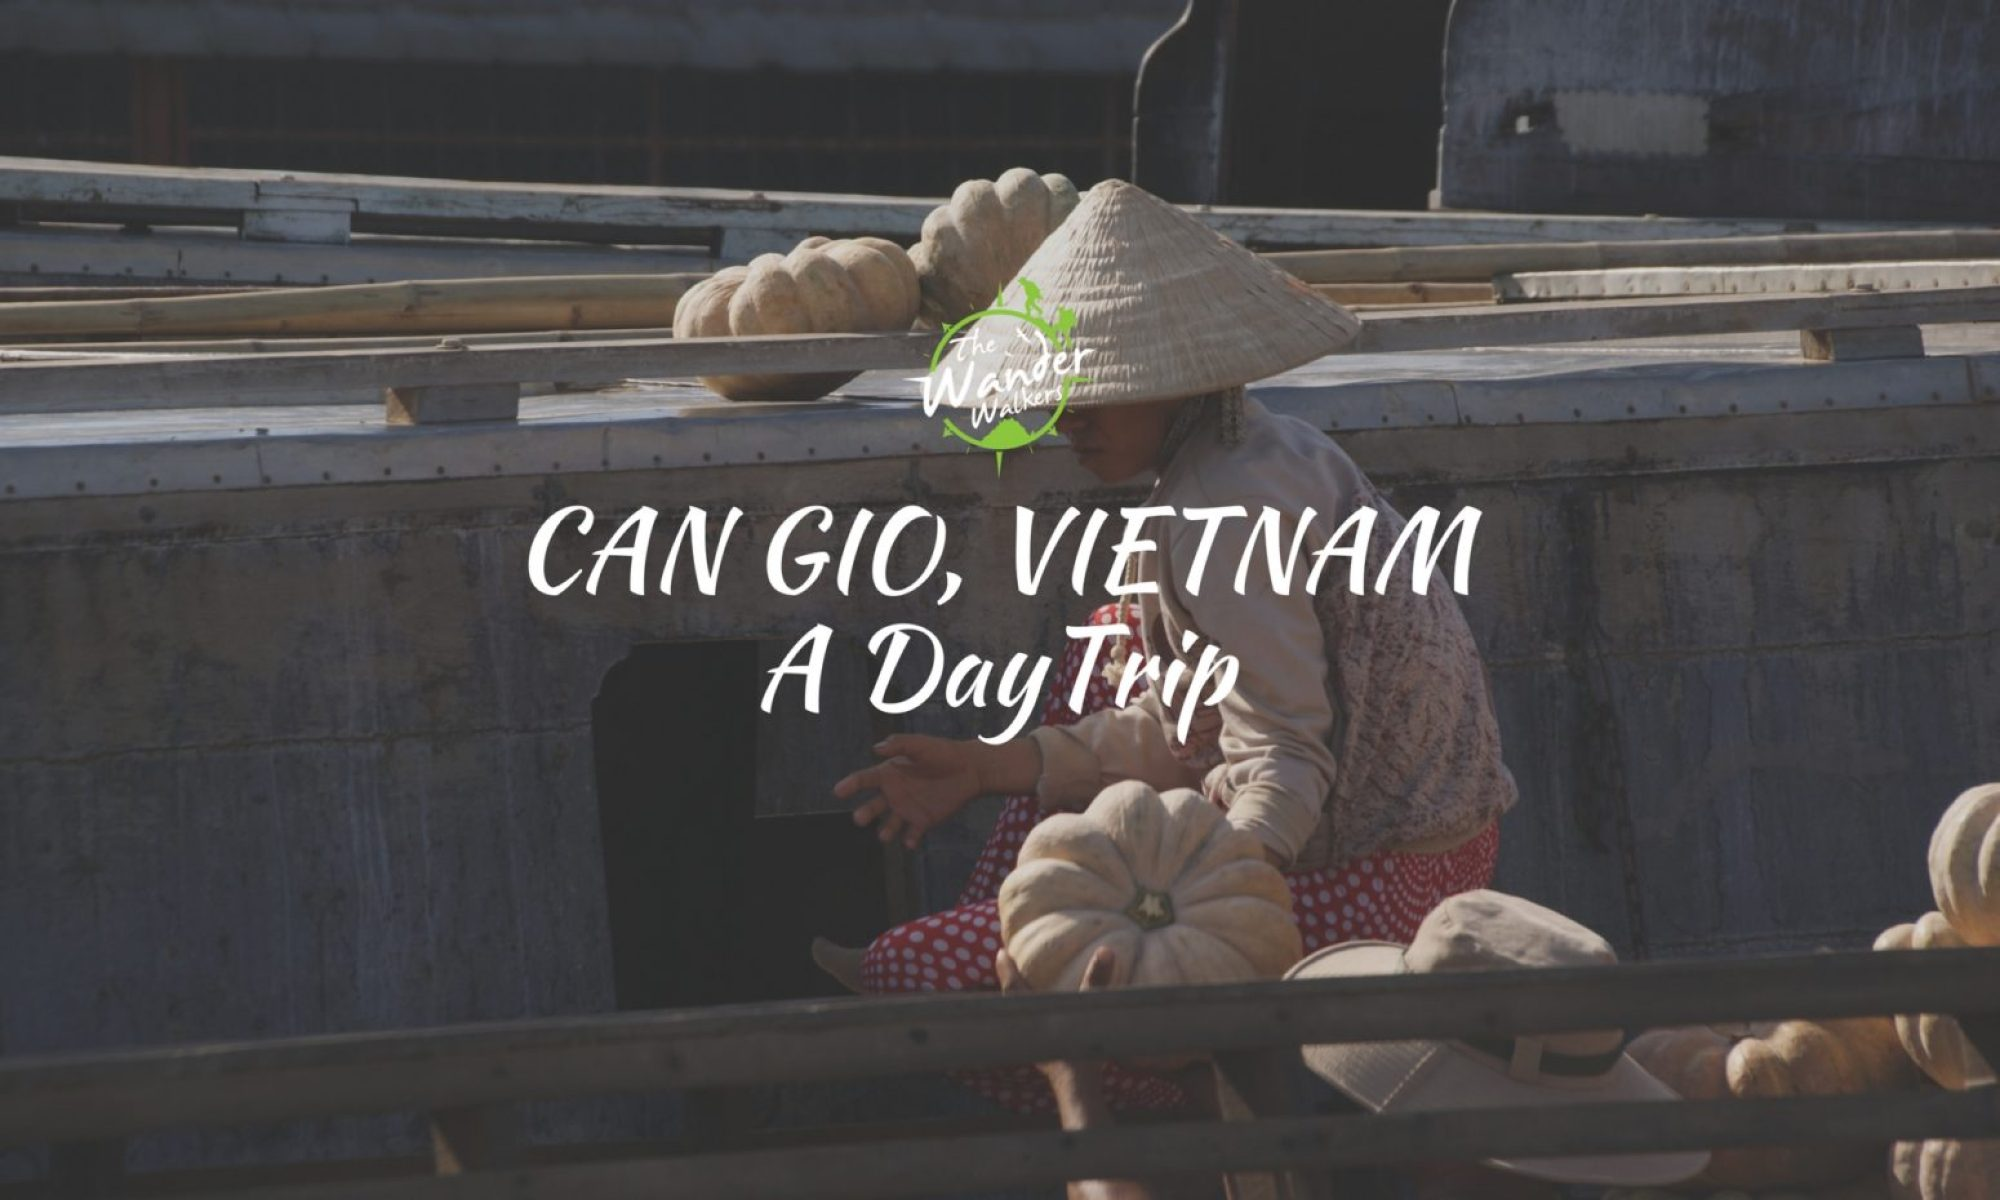 can gio vietnam